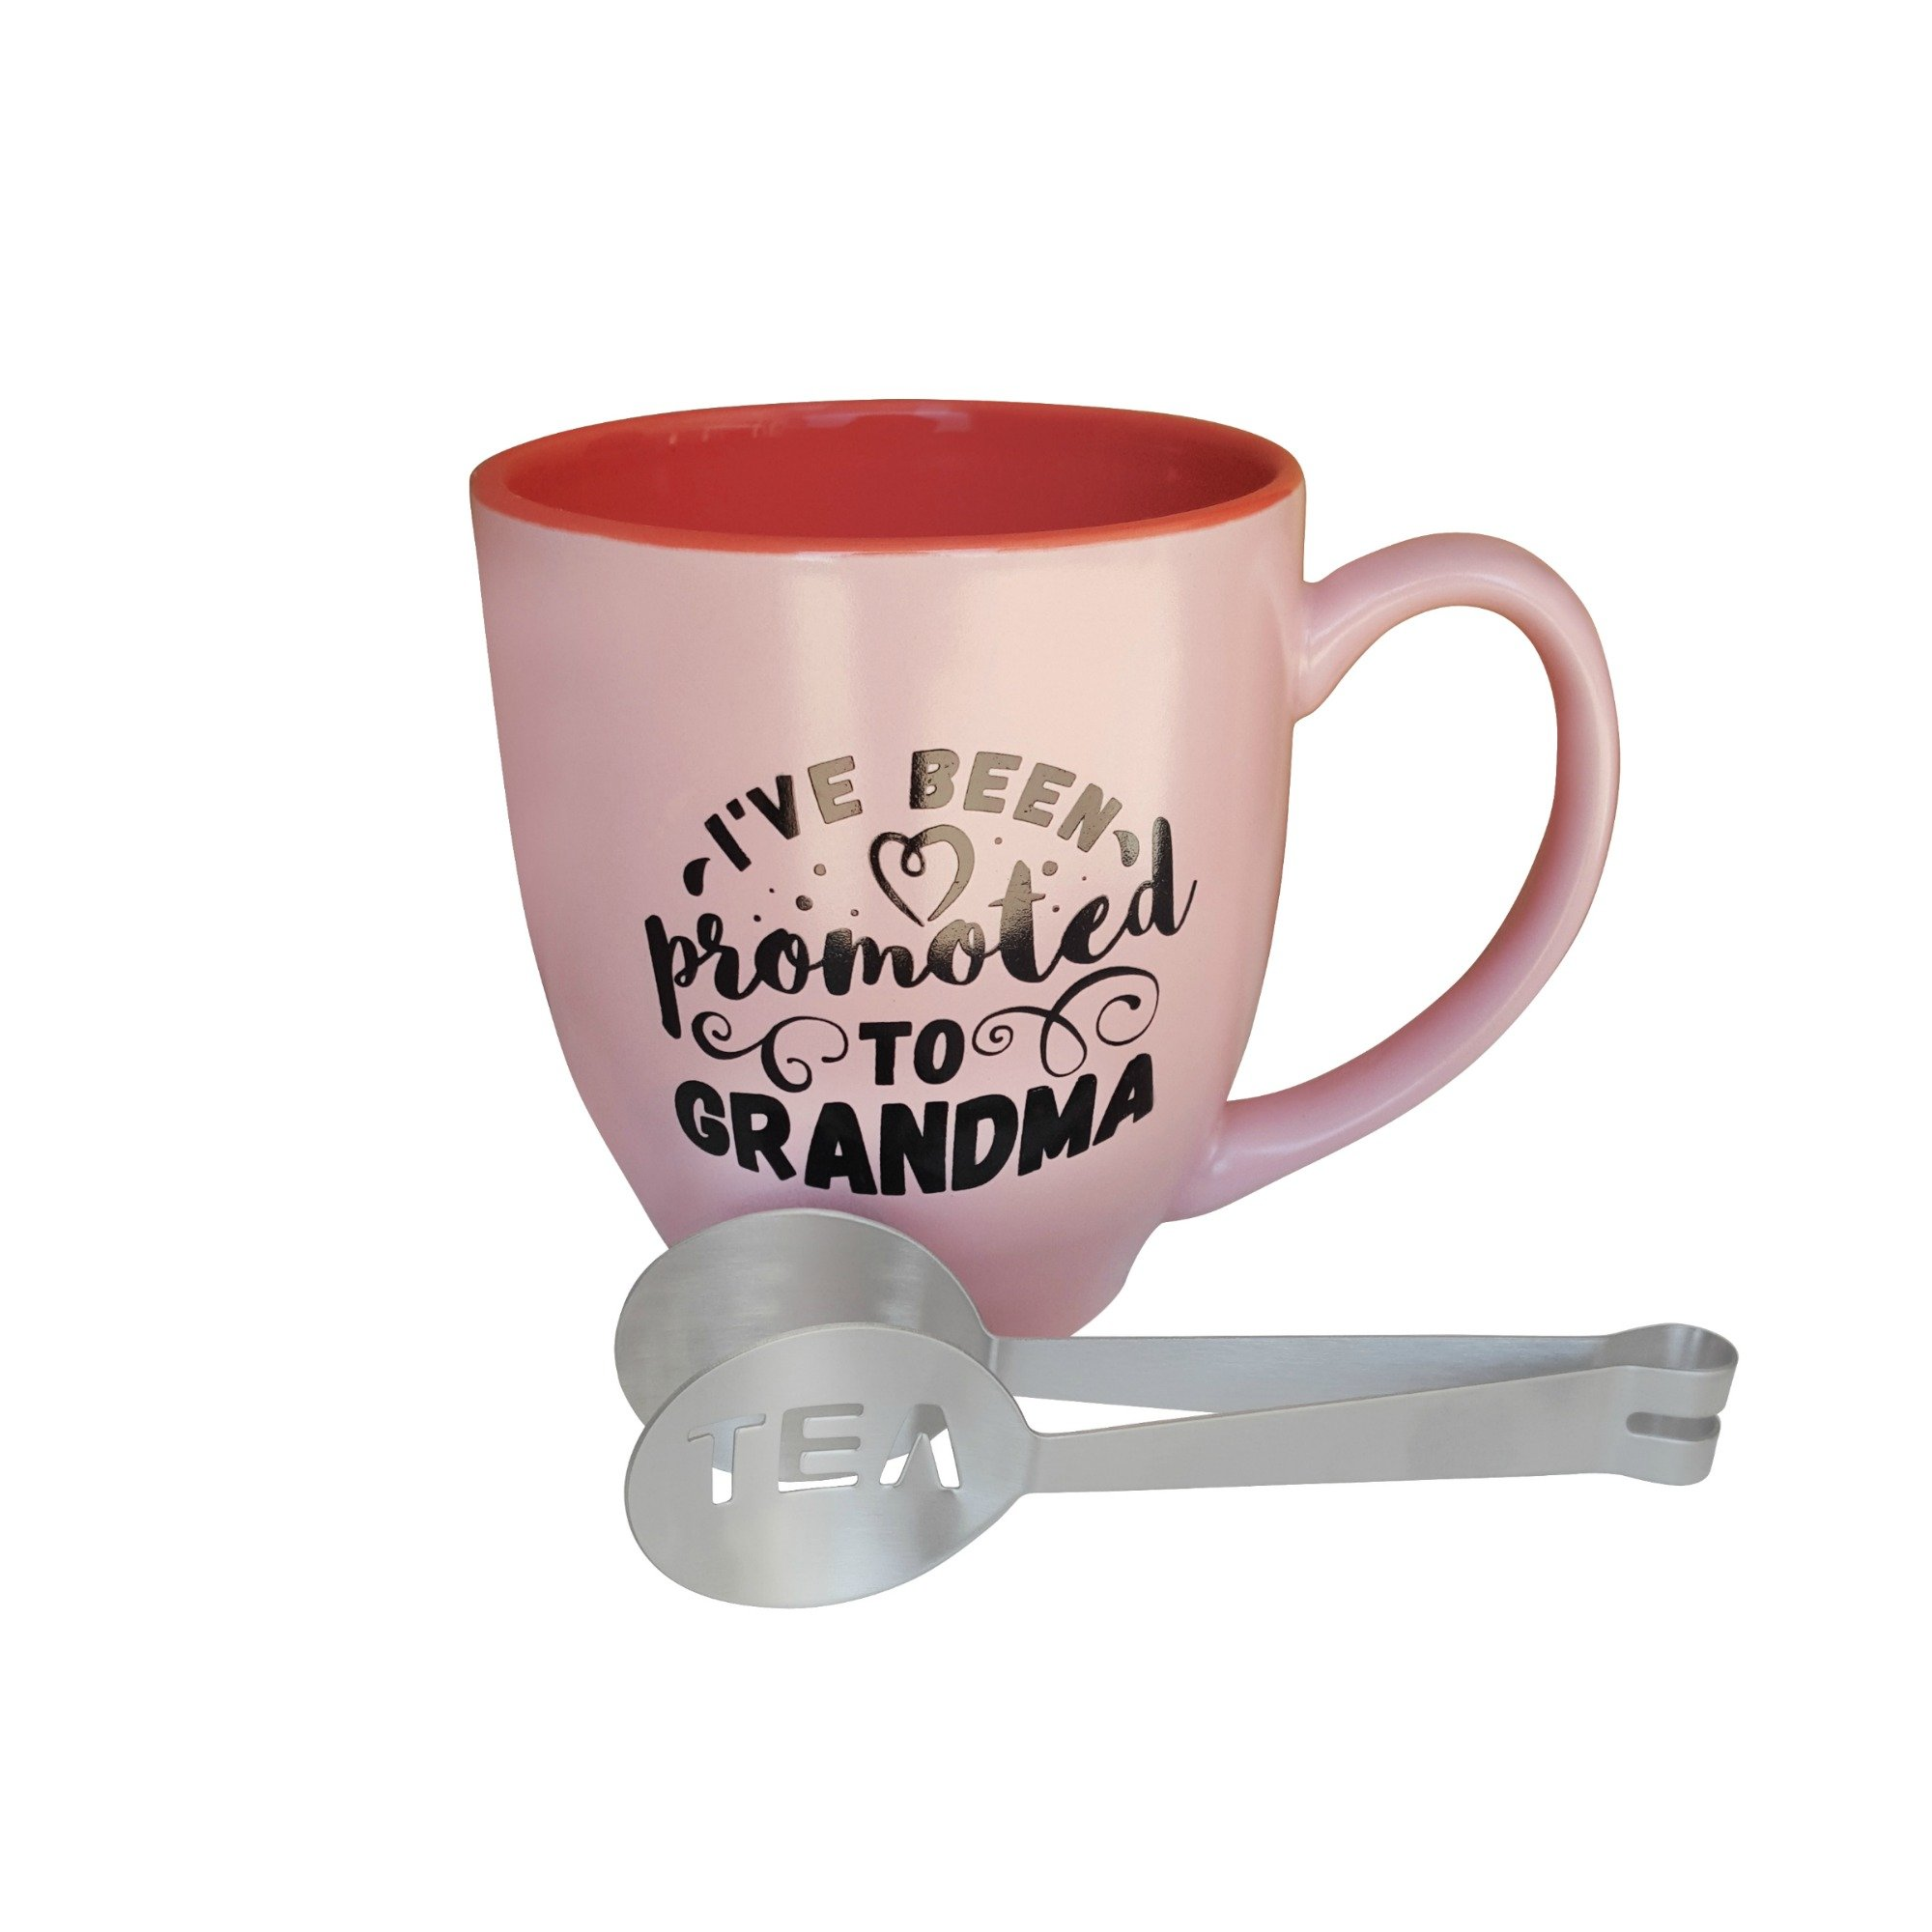 Grandma Mug I've Been Promoted to Grandma Pink Two Tone Bistro Mug and Stainless-Steel Tea Squeezer – 2 items in bundle